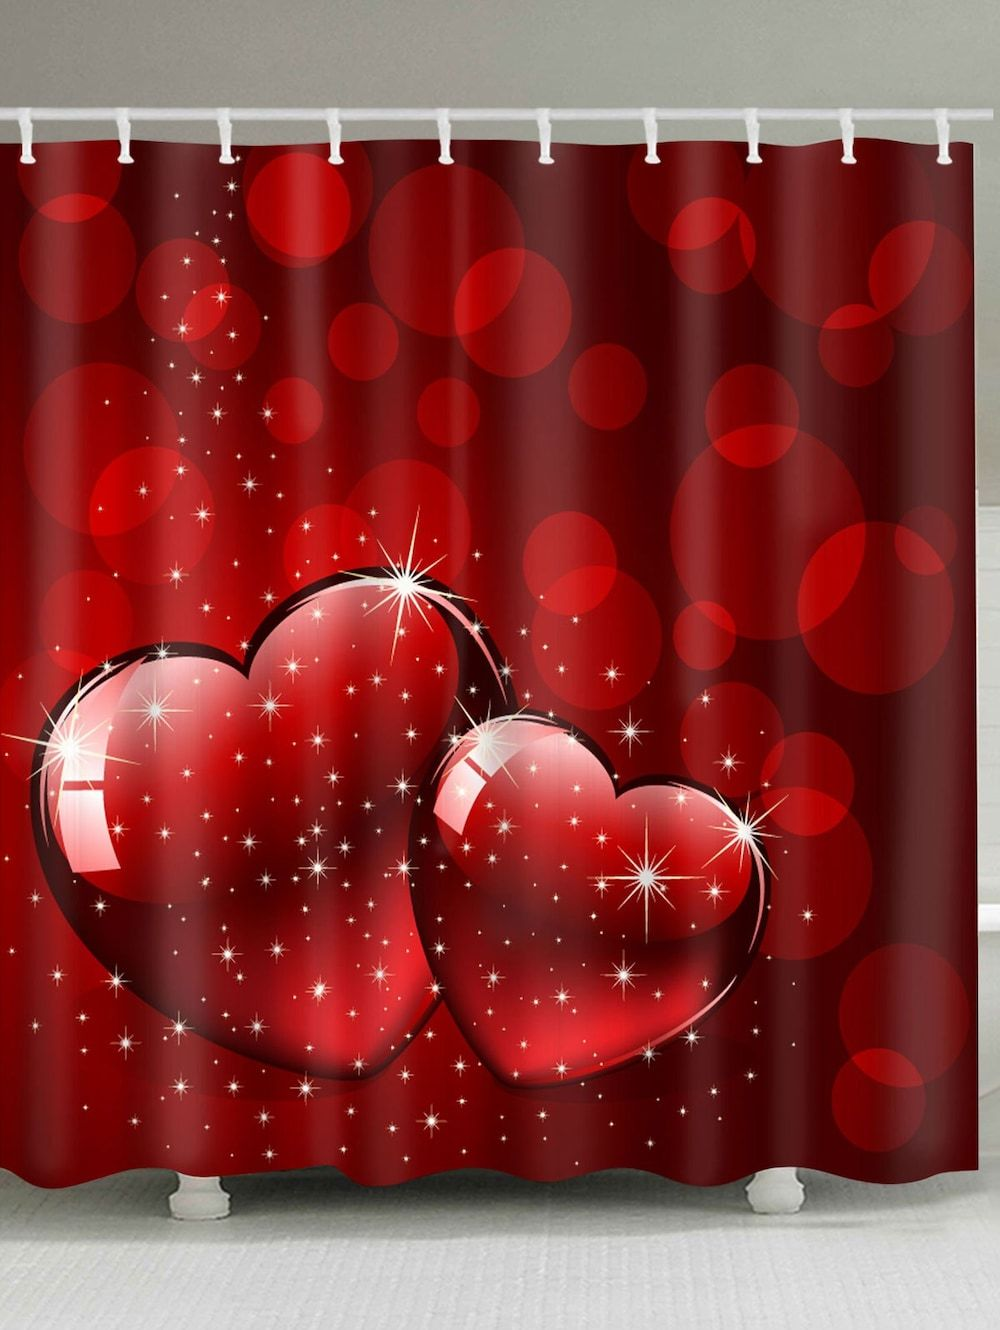 Buy Shower Curtains Online Valentine S Day Starlight Heart Print Waterproof Shower Curtain